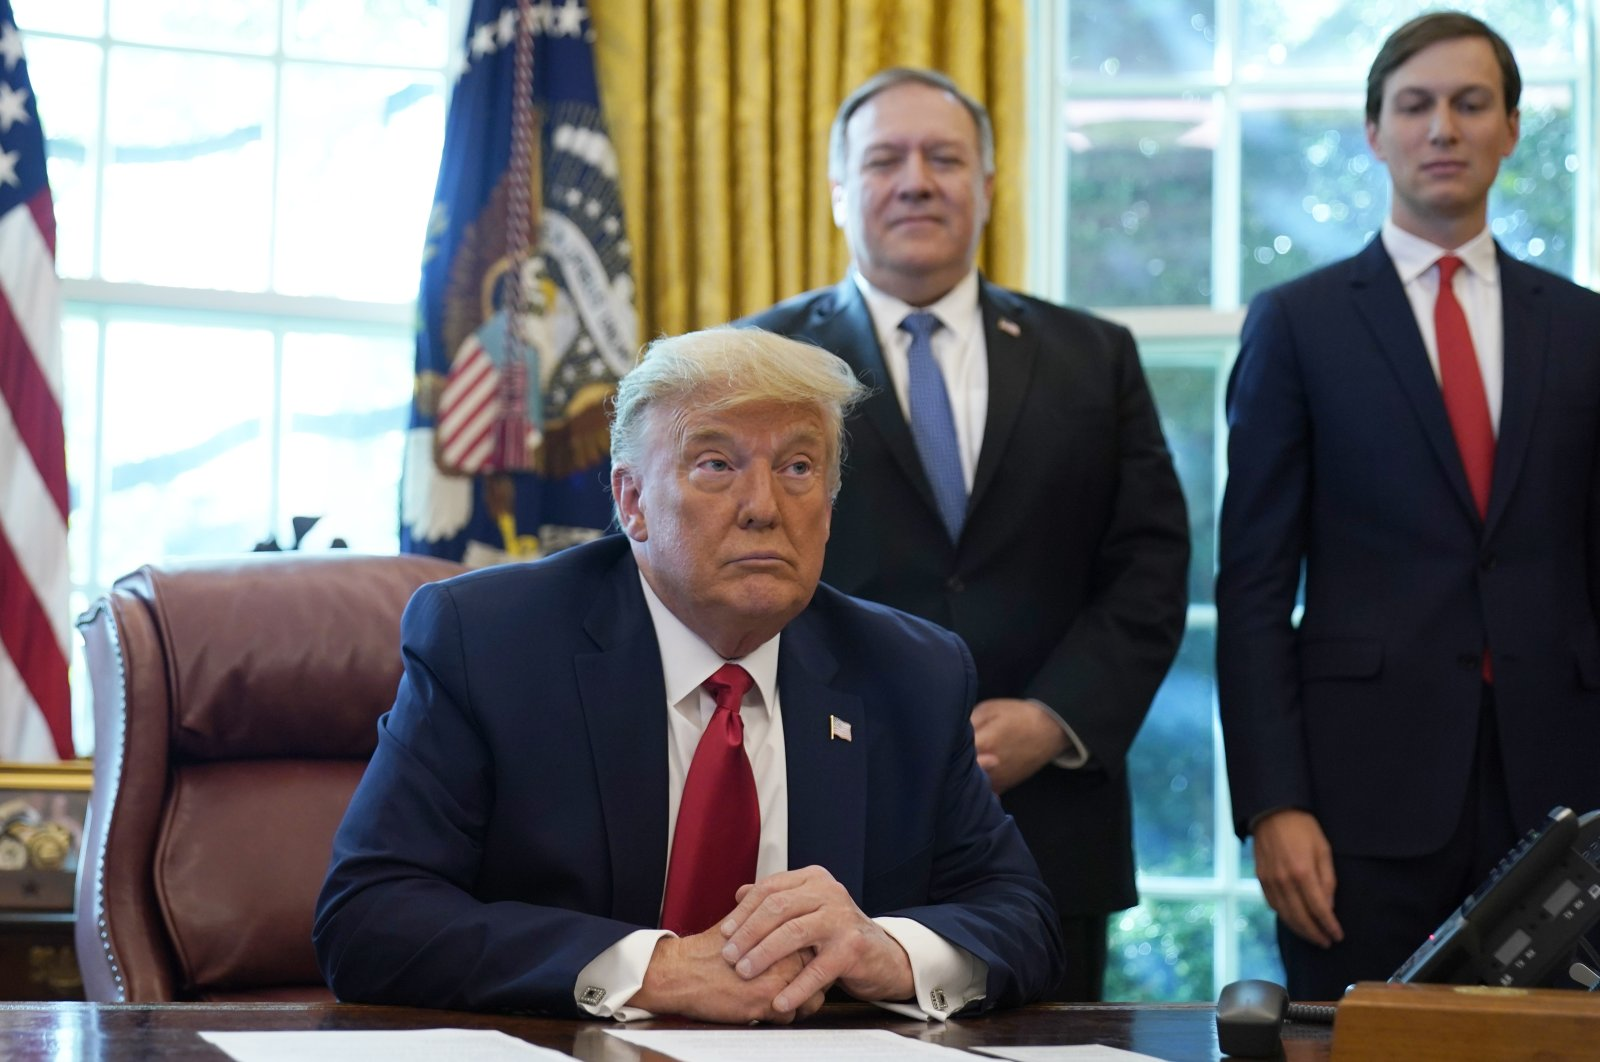 President Donald Trump listens while on a phone call with leaders of Sudan and Israel in the Oval Office of the White House, Washington, D.C., Oct. 23, 2020. (AP Photo)